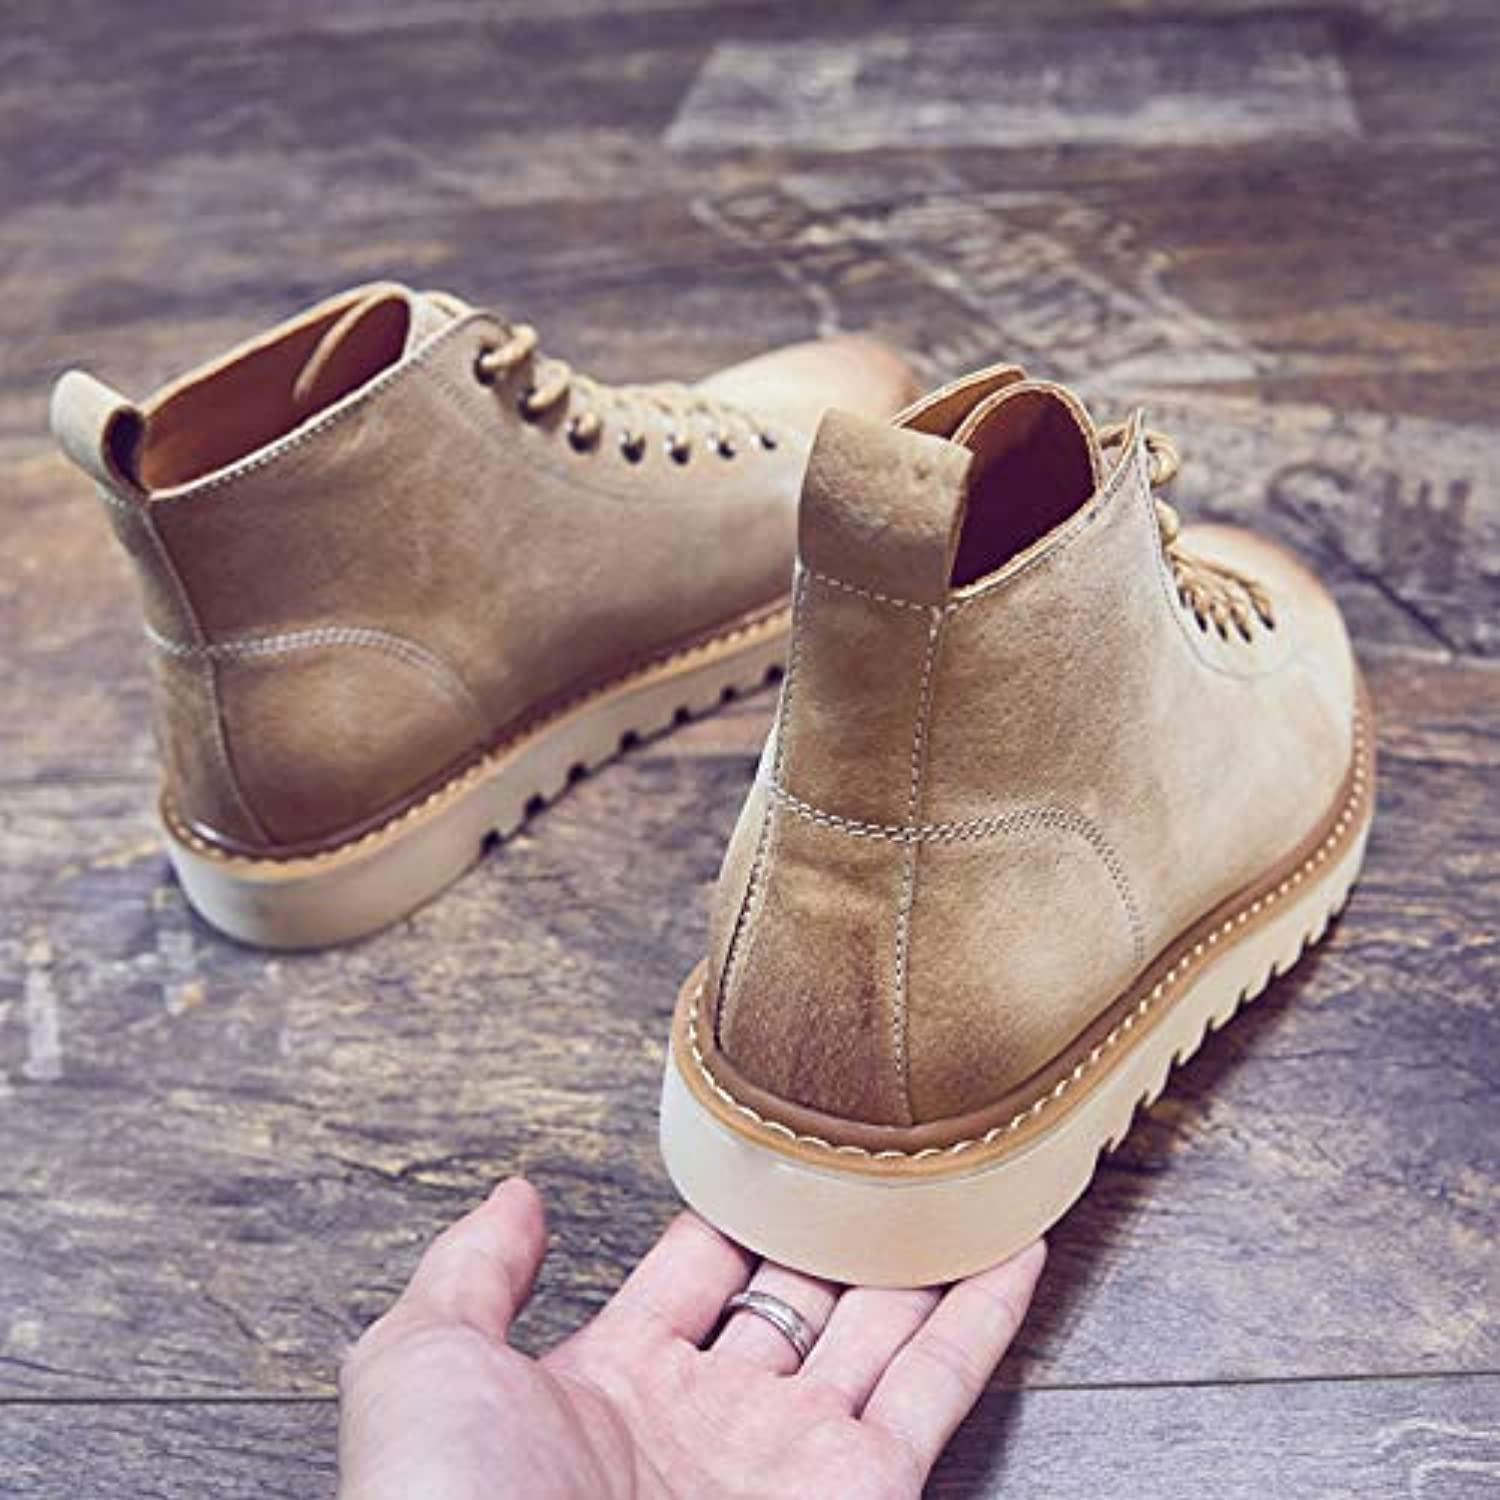 ZyuQ Ankle boots Men'S shoes Autumn High Help Martin Boots Men'S Middle Help Retro Men'S Boots Pu Thick Boots